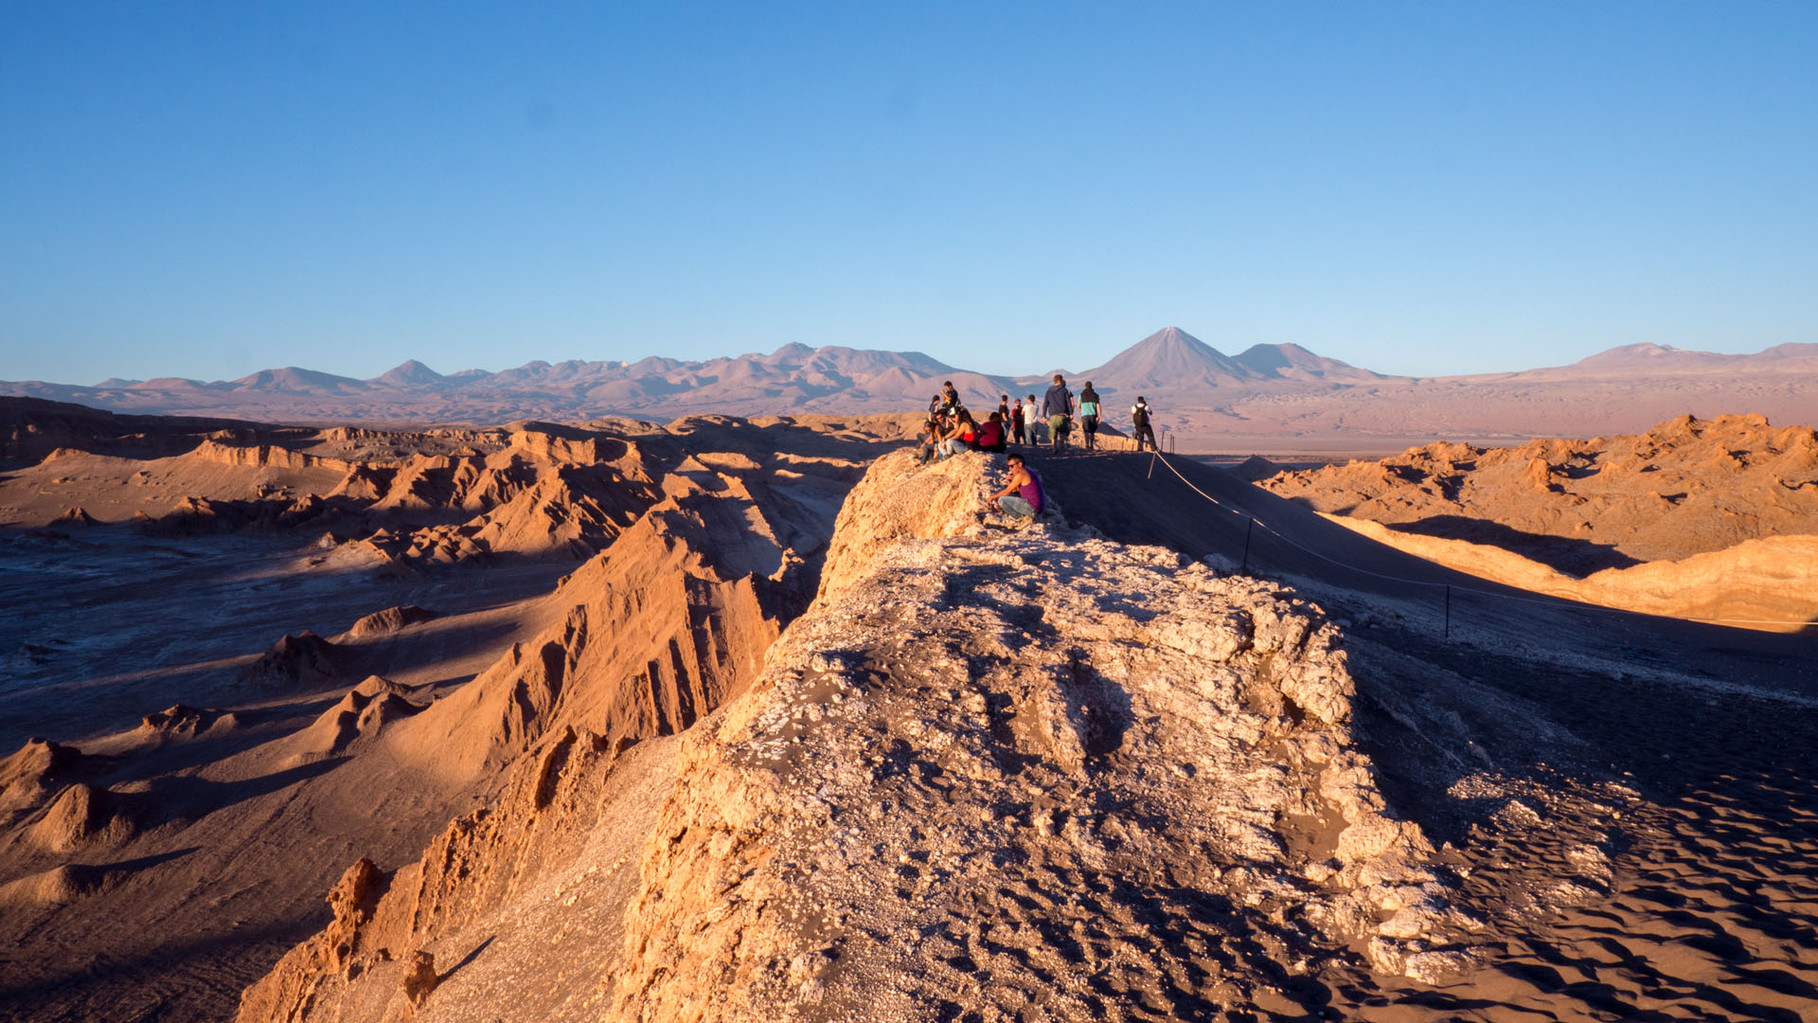 View from Duna Mayor (Big Dune) at sunset, Andes in the background ), near San Pedro de Atacama, Chile